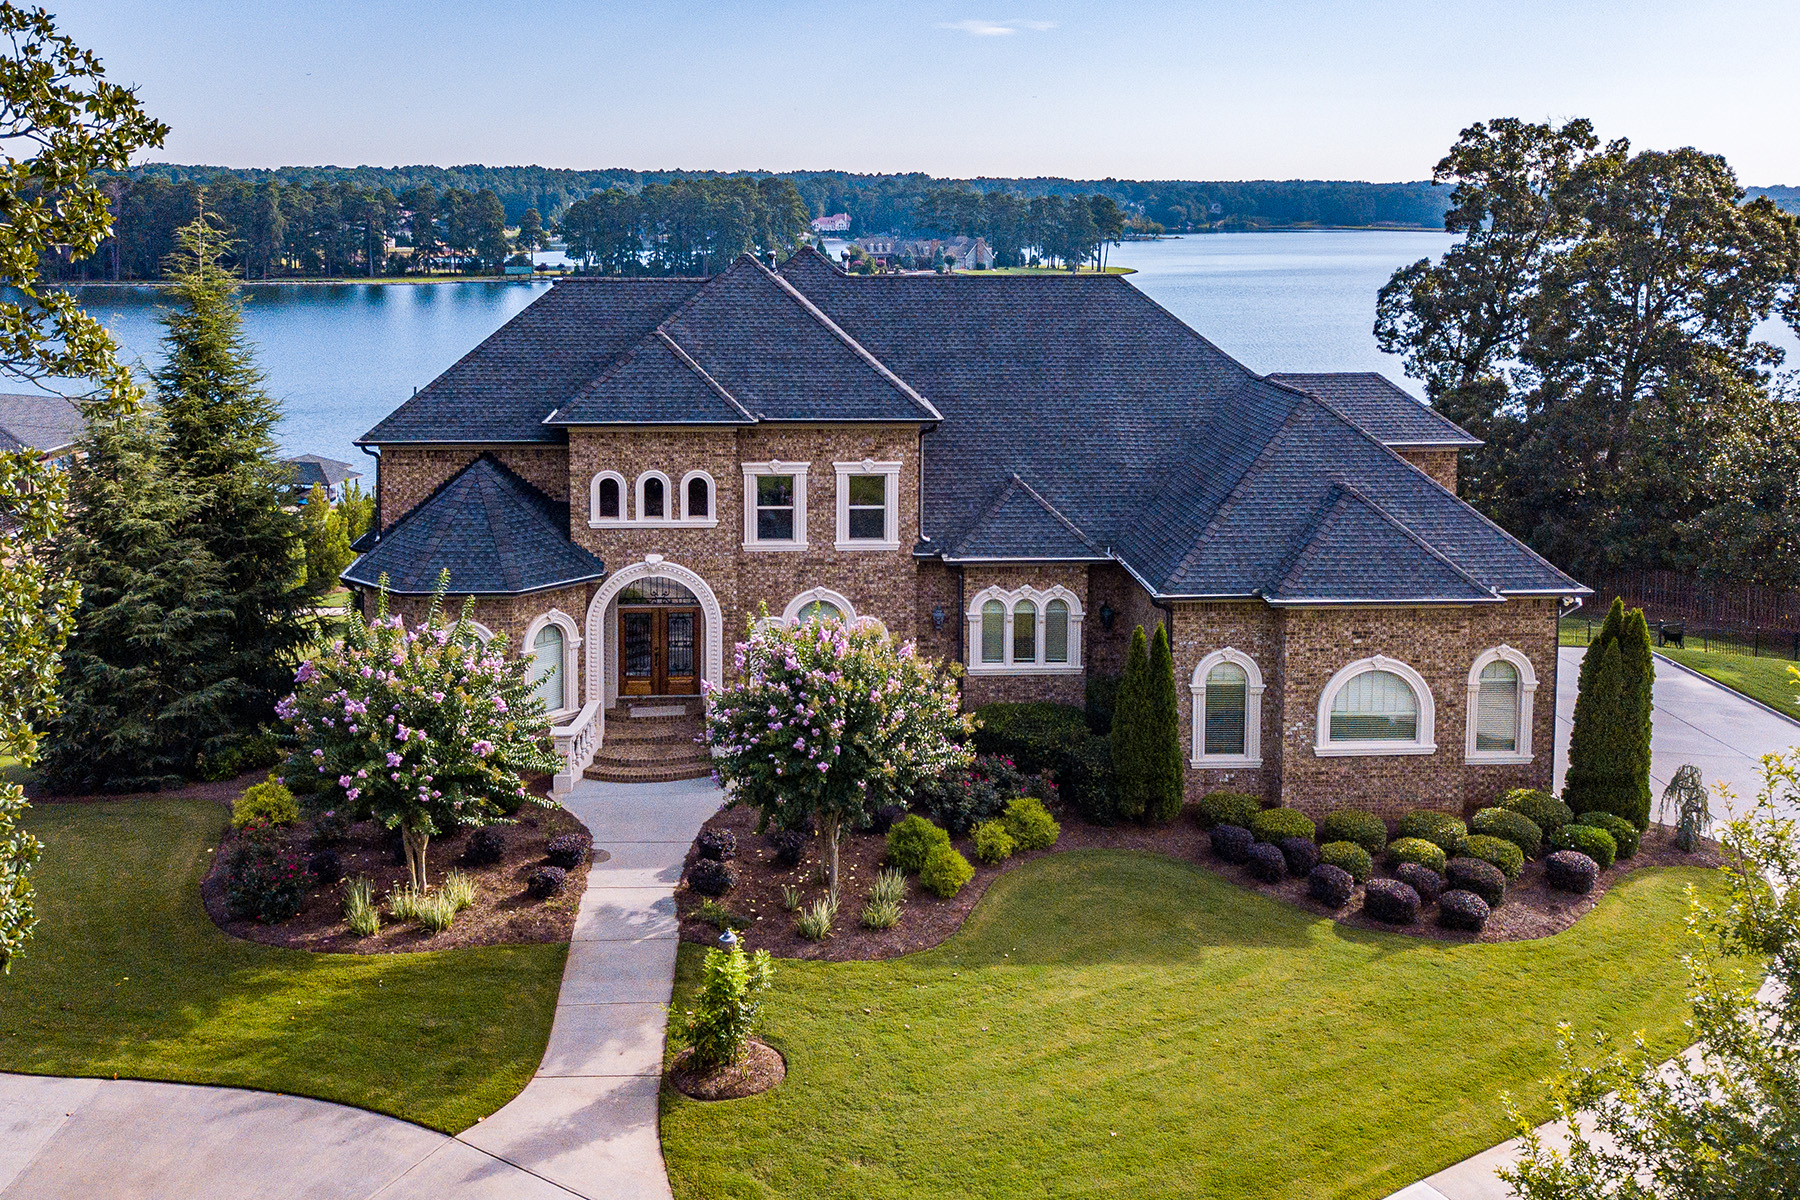 Single Family Homes for Sale at Lake Spivey- Luxurious, Gated Lake Front Estate 3056 Emerald Drive Jonesboro, Georgia 30236 United States